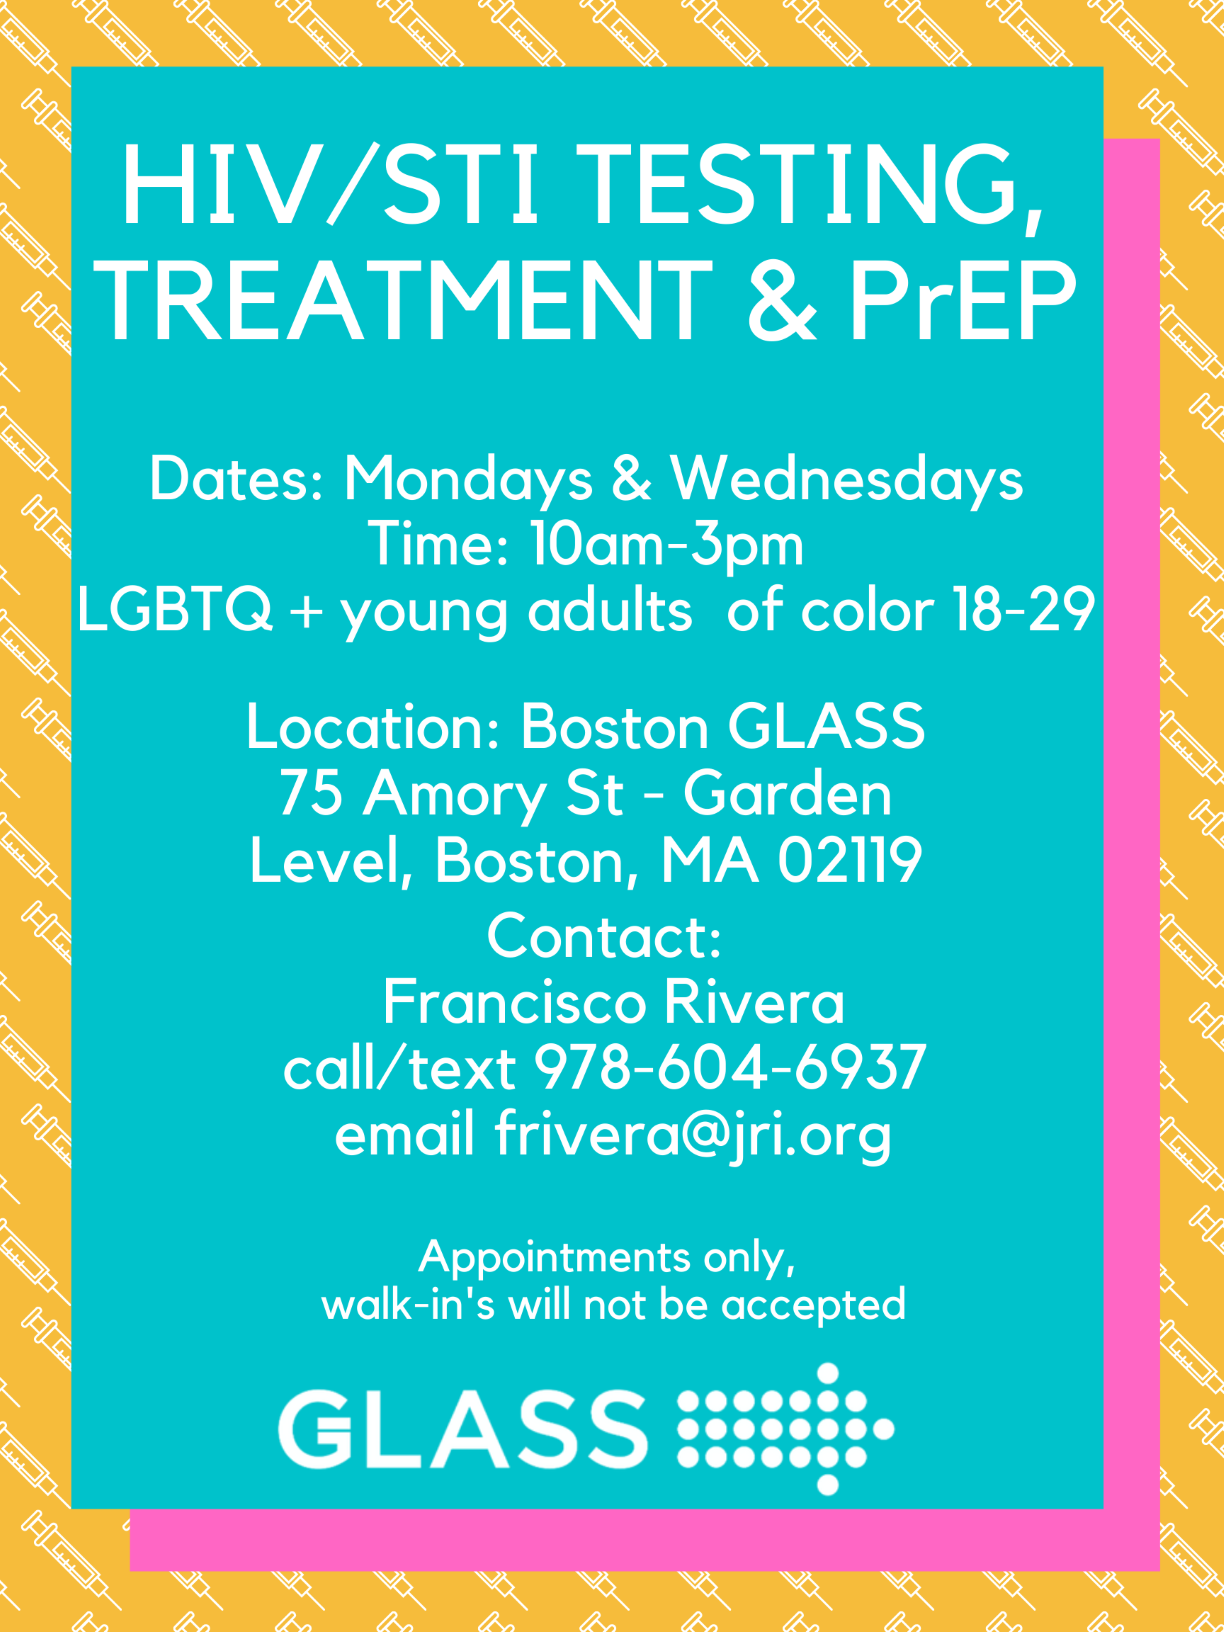 HIV testing, treatment and PrEP